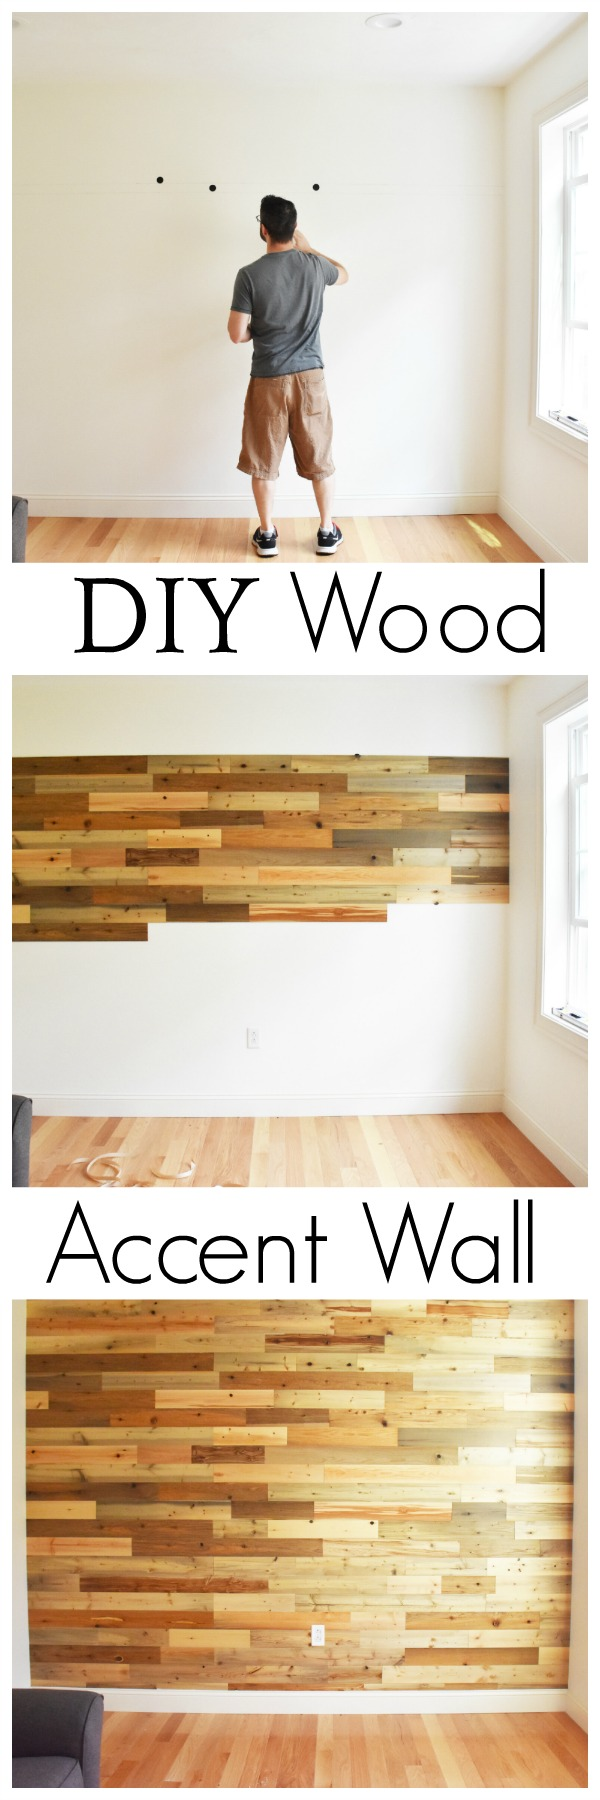 DIY Wood Accent Wall using reclaimed river wood planks from Timberchic! Create a warm and unique environment in your home with Timberchic Reclaimed River Wood Boards! AD